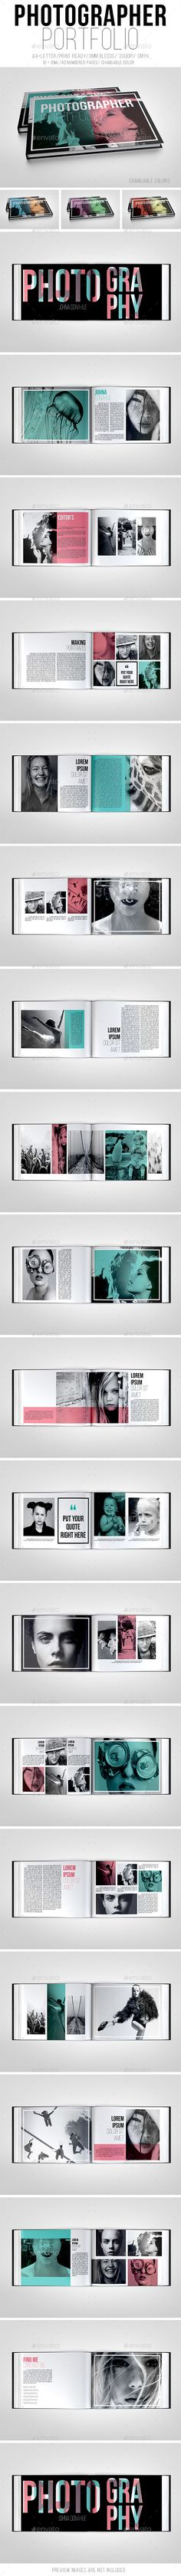 Photographer Portfolio Brochure Template. Download: http://graphicriver.net/item/photographer-portfolio-brochure/10404395?ref=ksioks